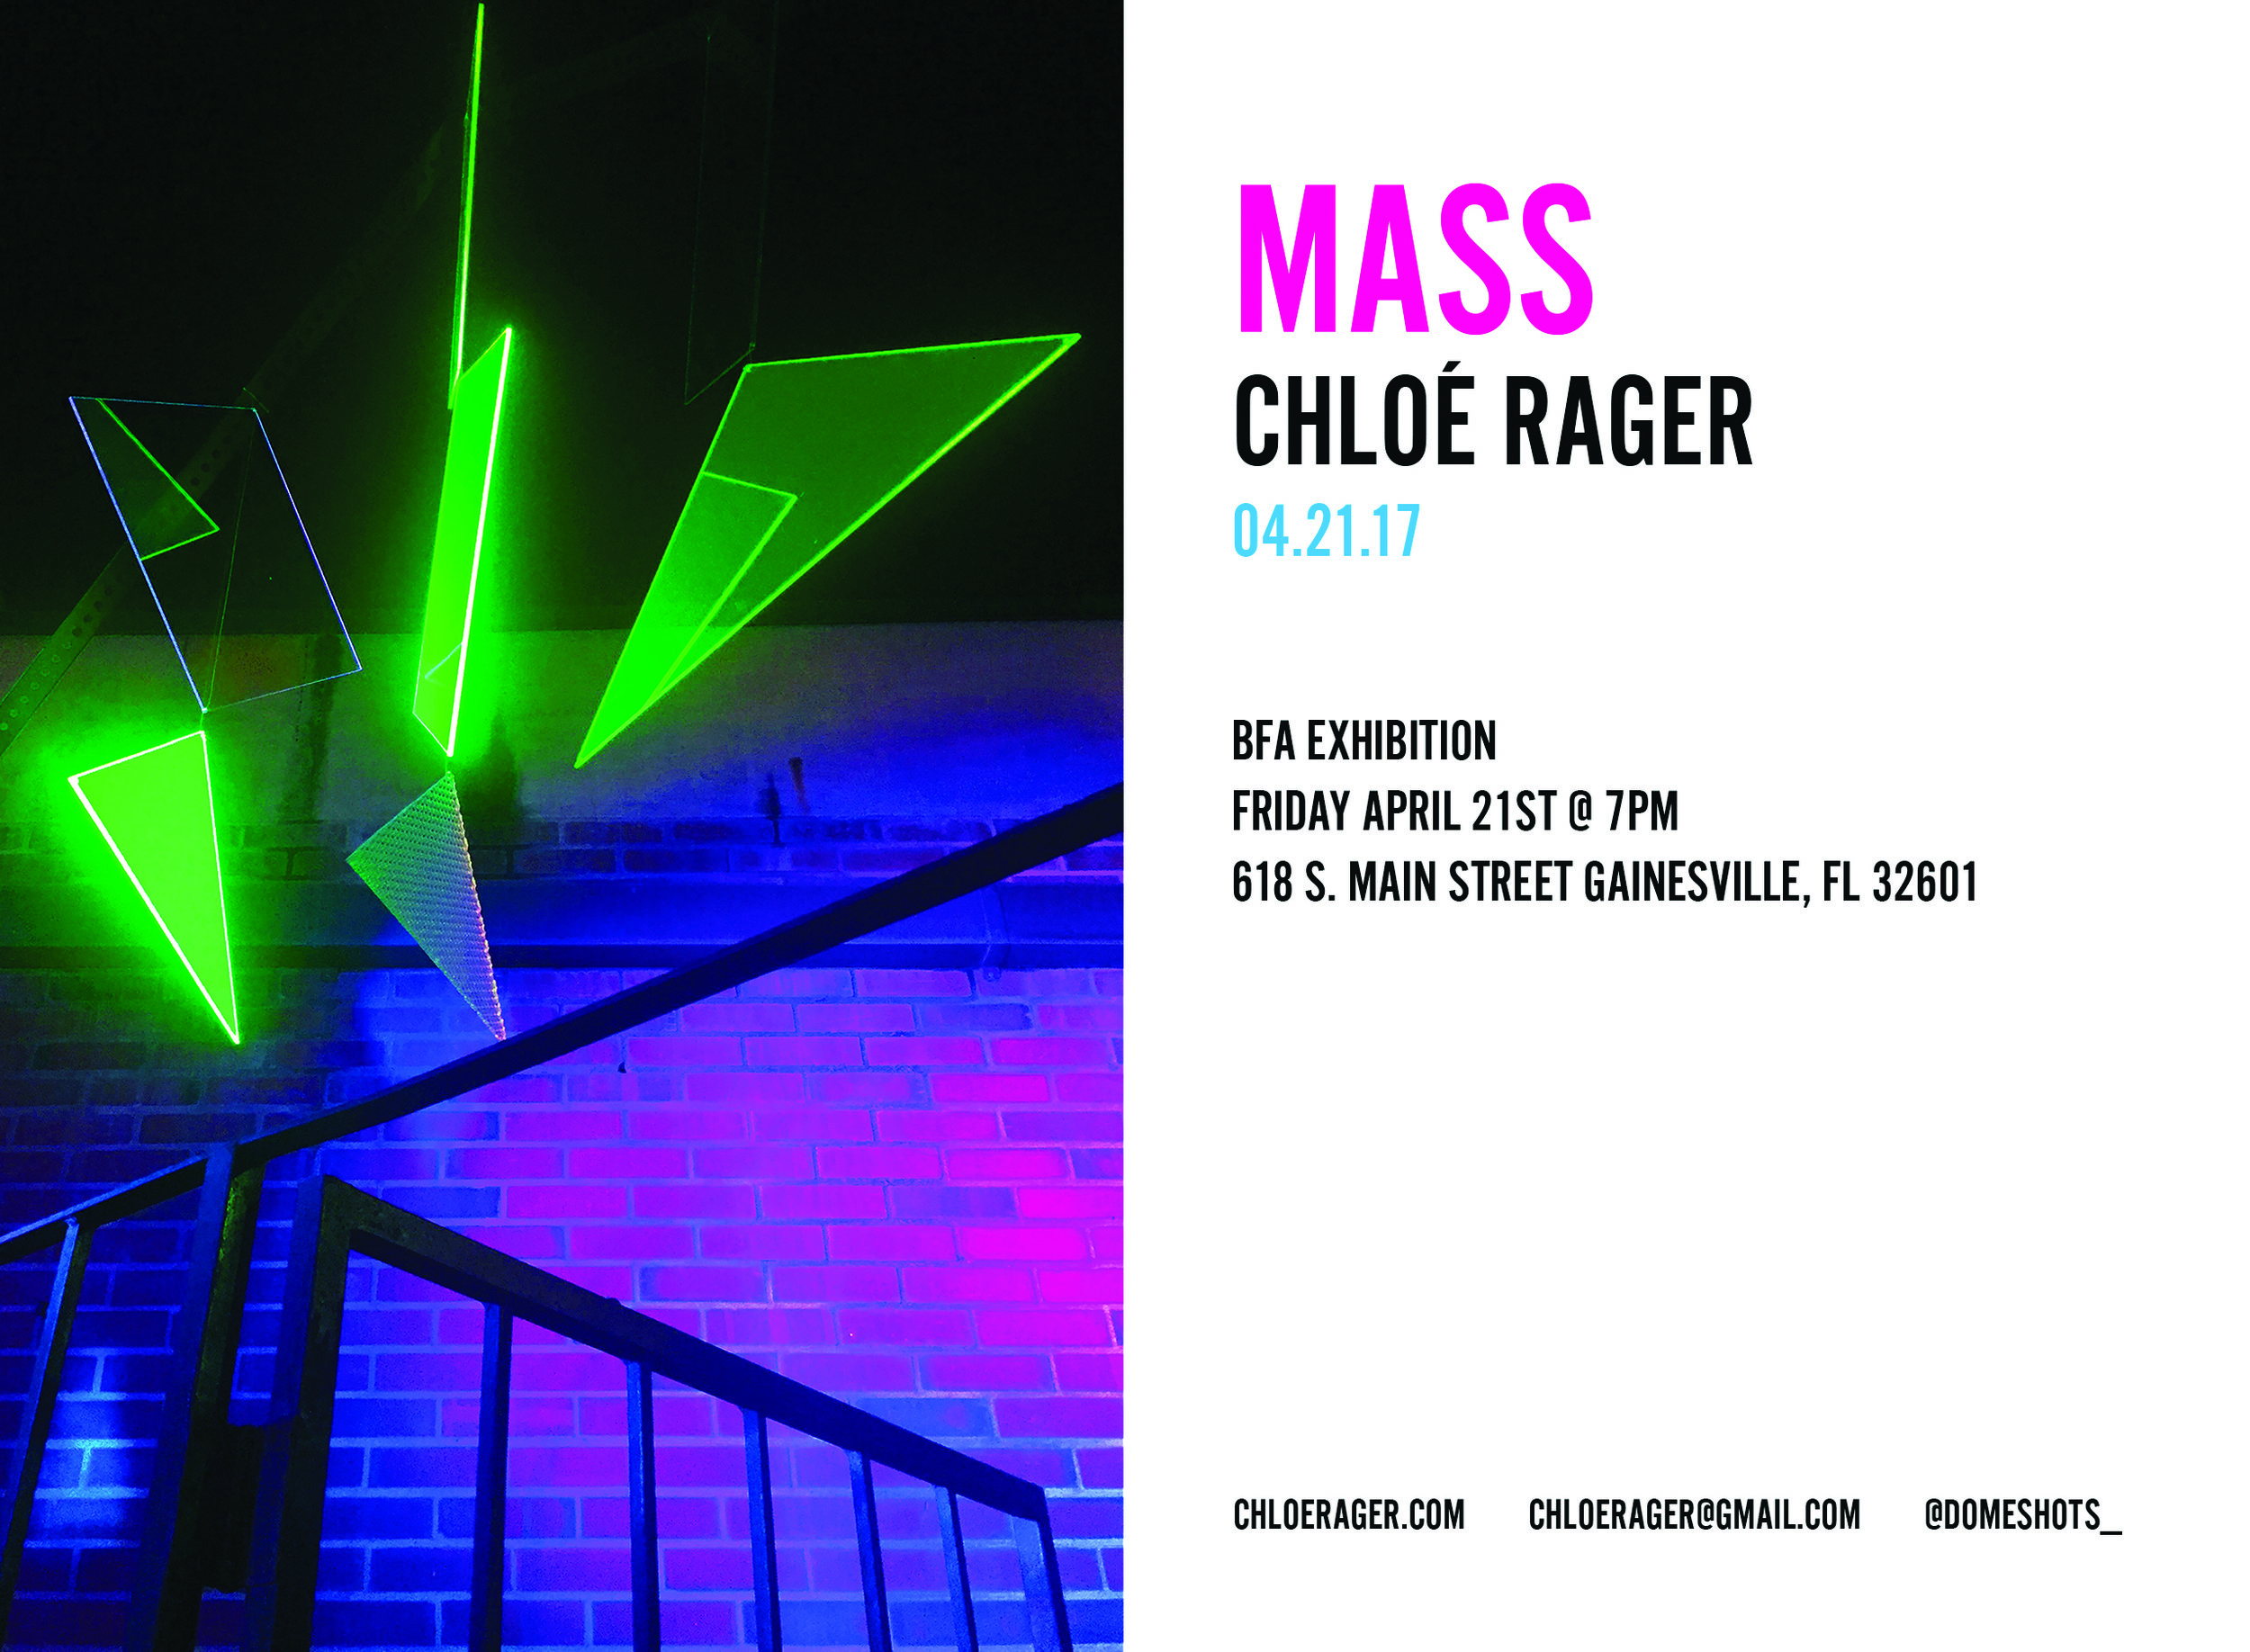 MASS Exhibition press    Rager, Chloé 2017, 'MASS', BFA thesis, The University of Florida, <http://ufdc.ufl.edu/AA00057978/00001>.